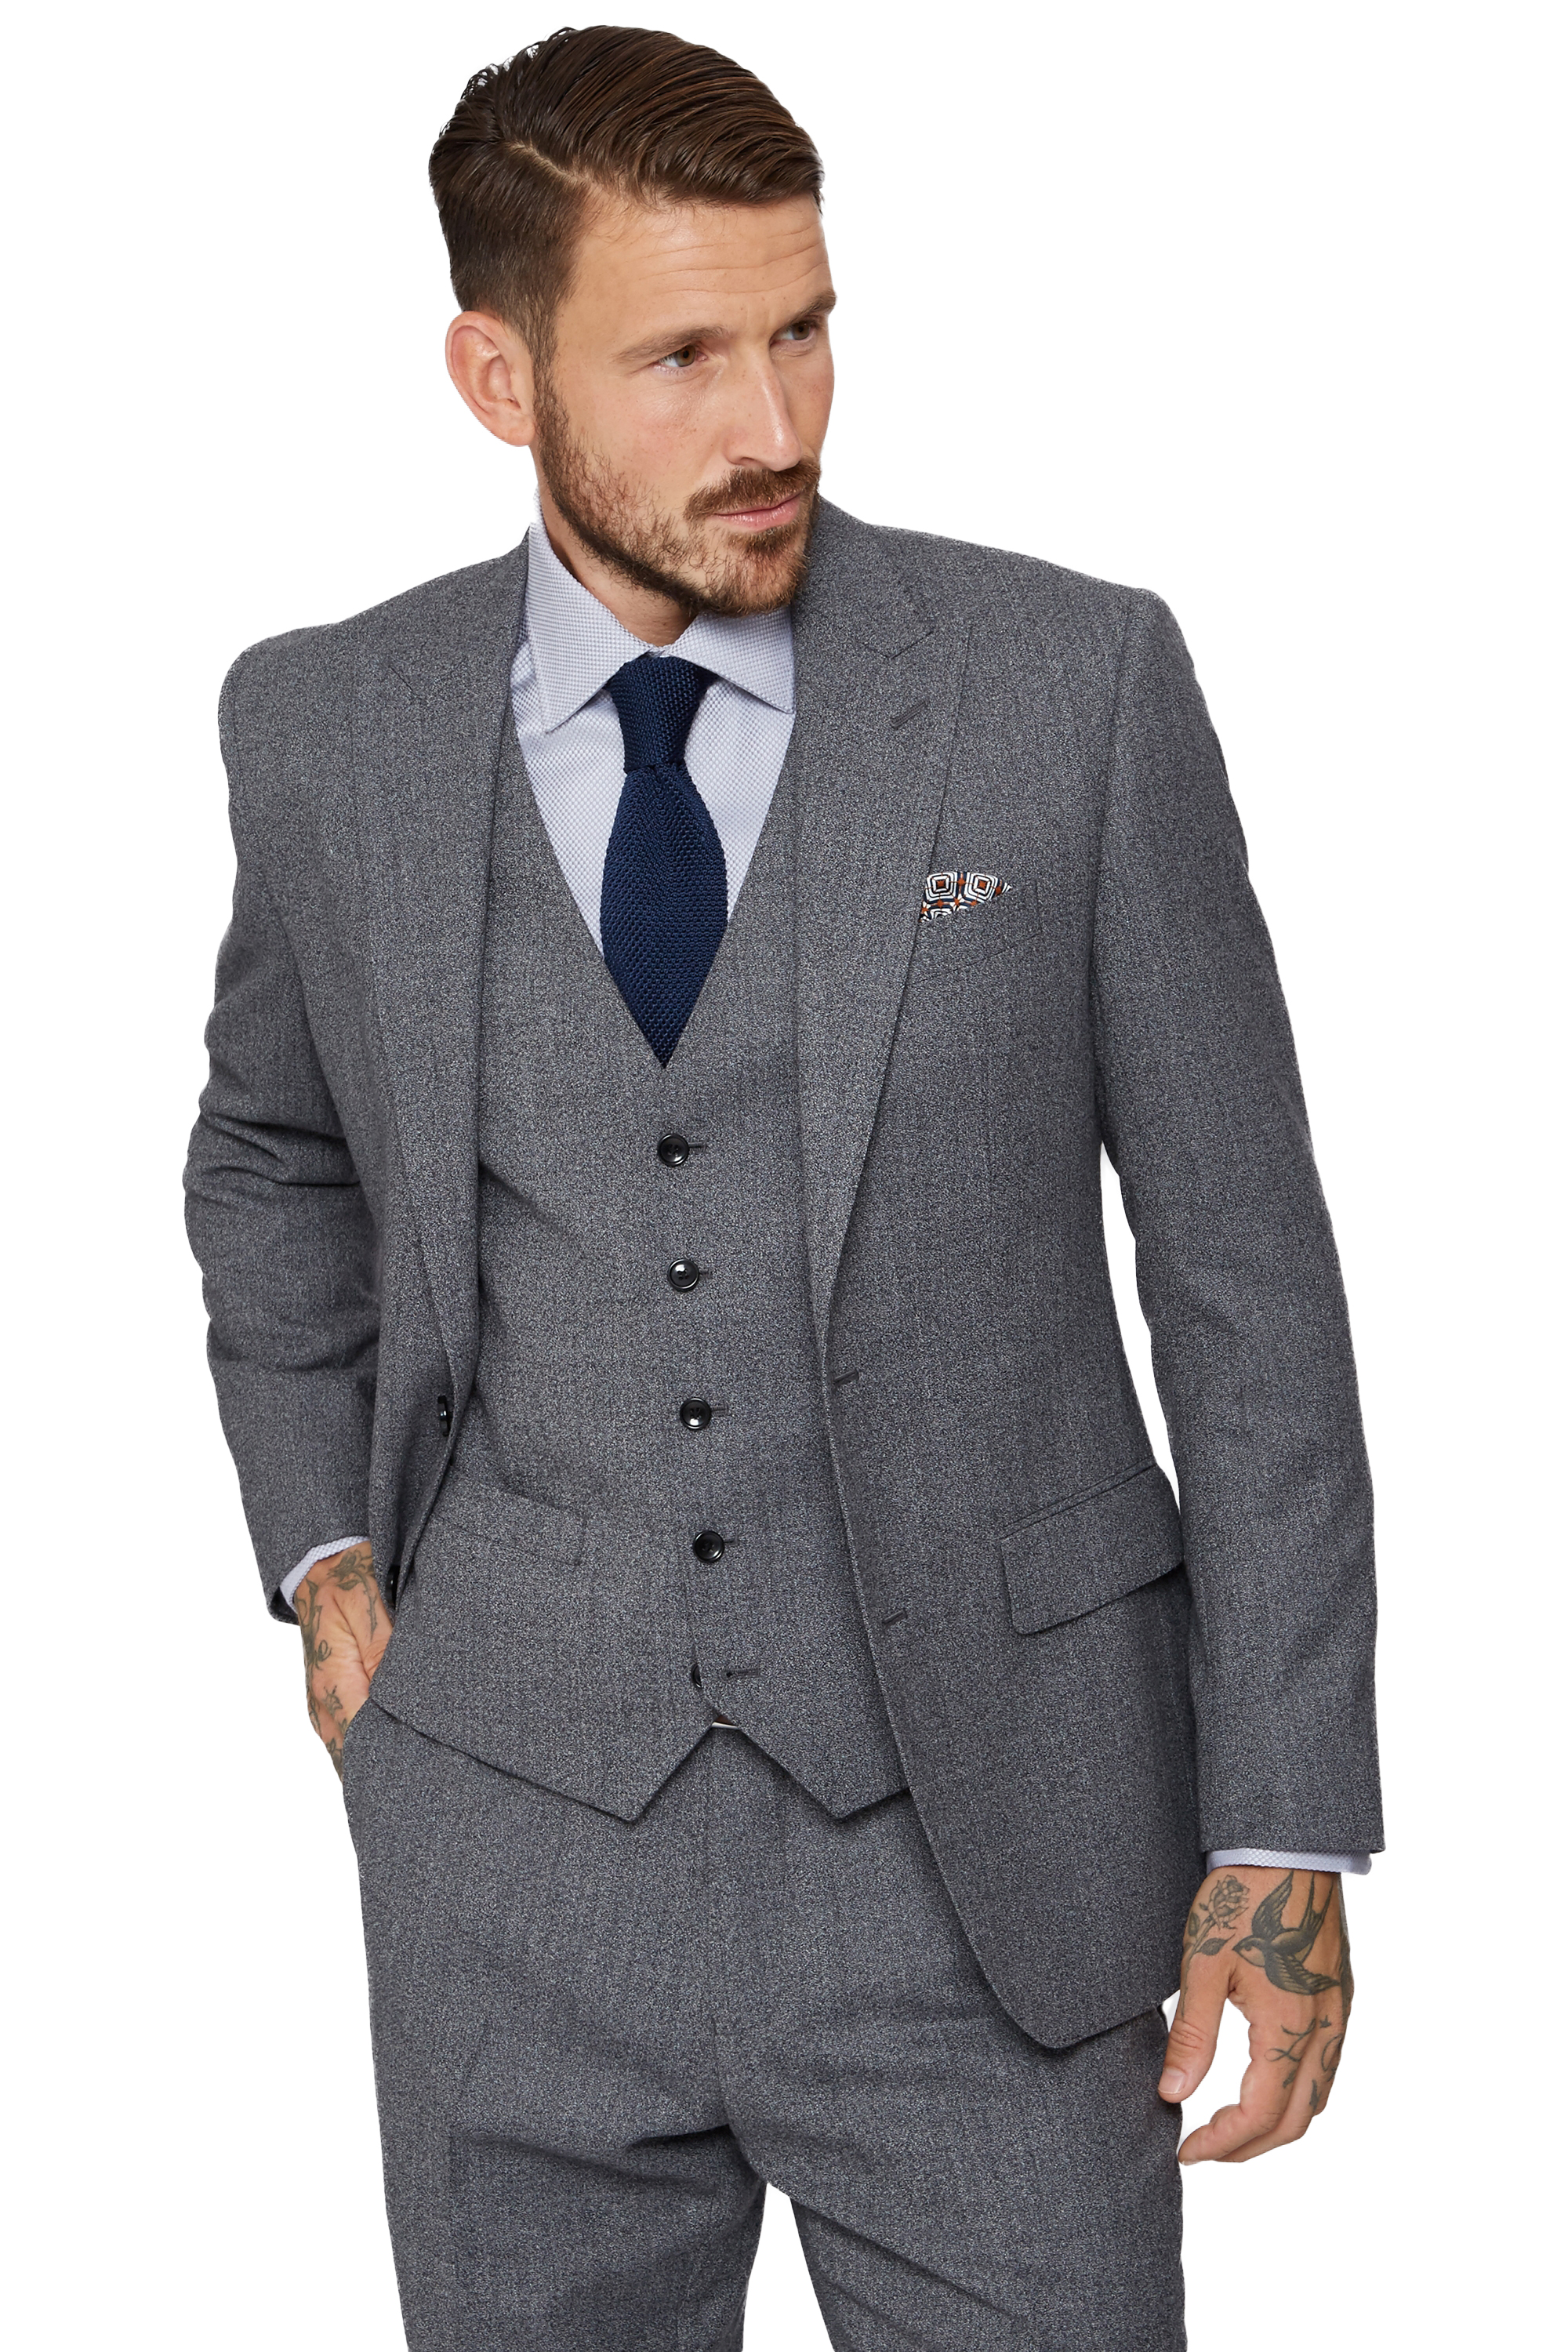 8d3ec83accc Moss 1851 Mens Grey Suit Jacket Tailored Fit Speckled Two Button Formal  Blazer